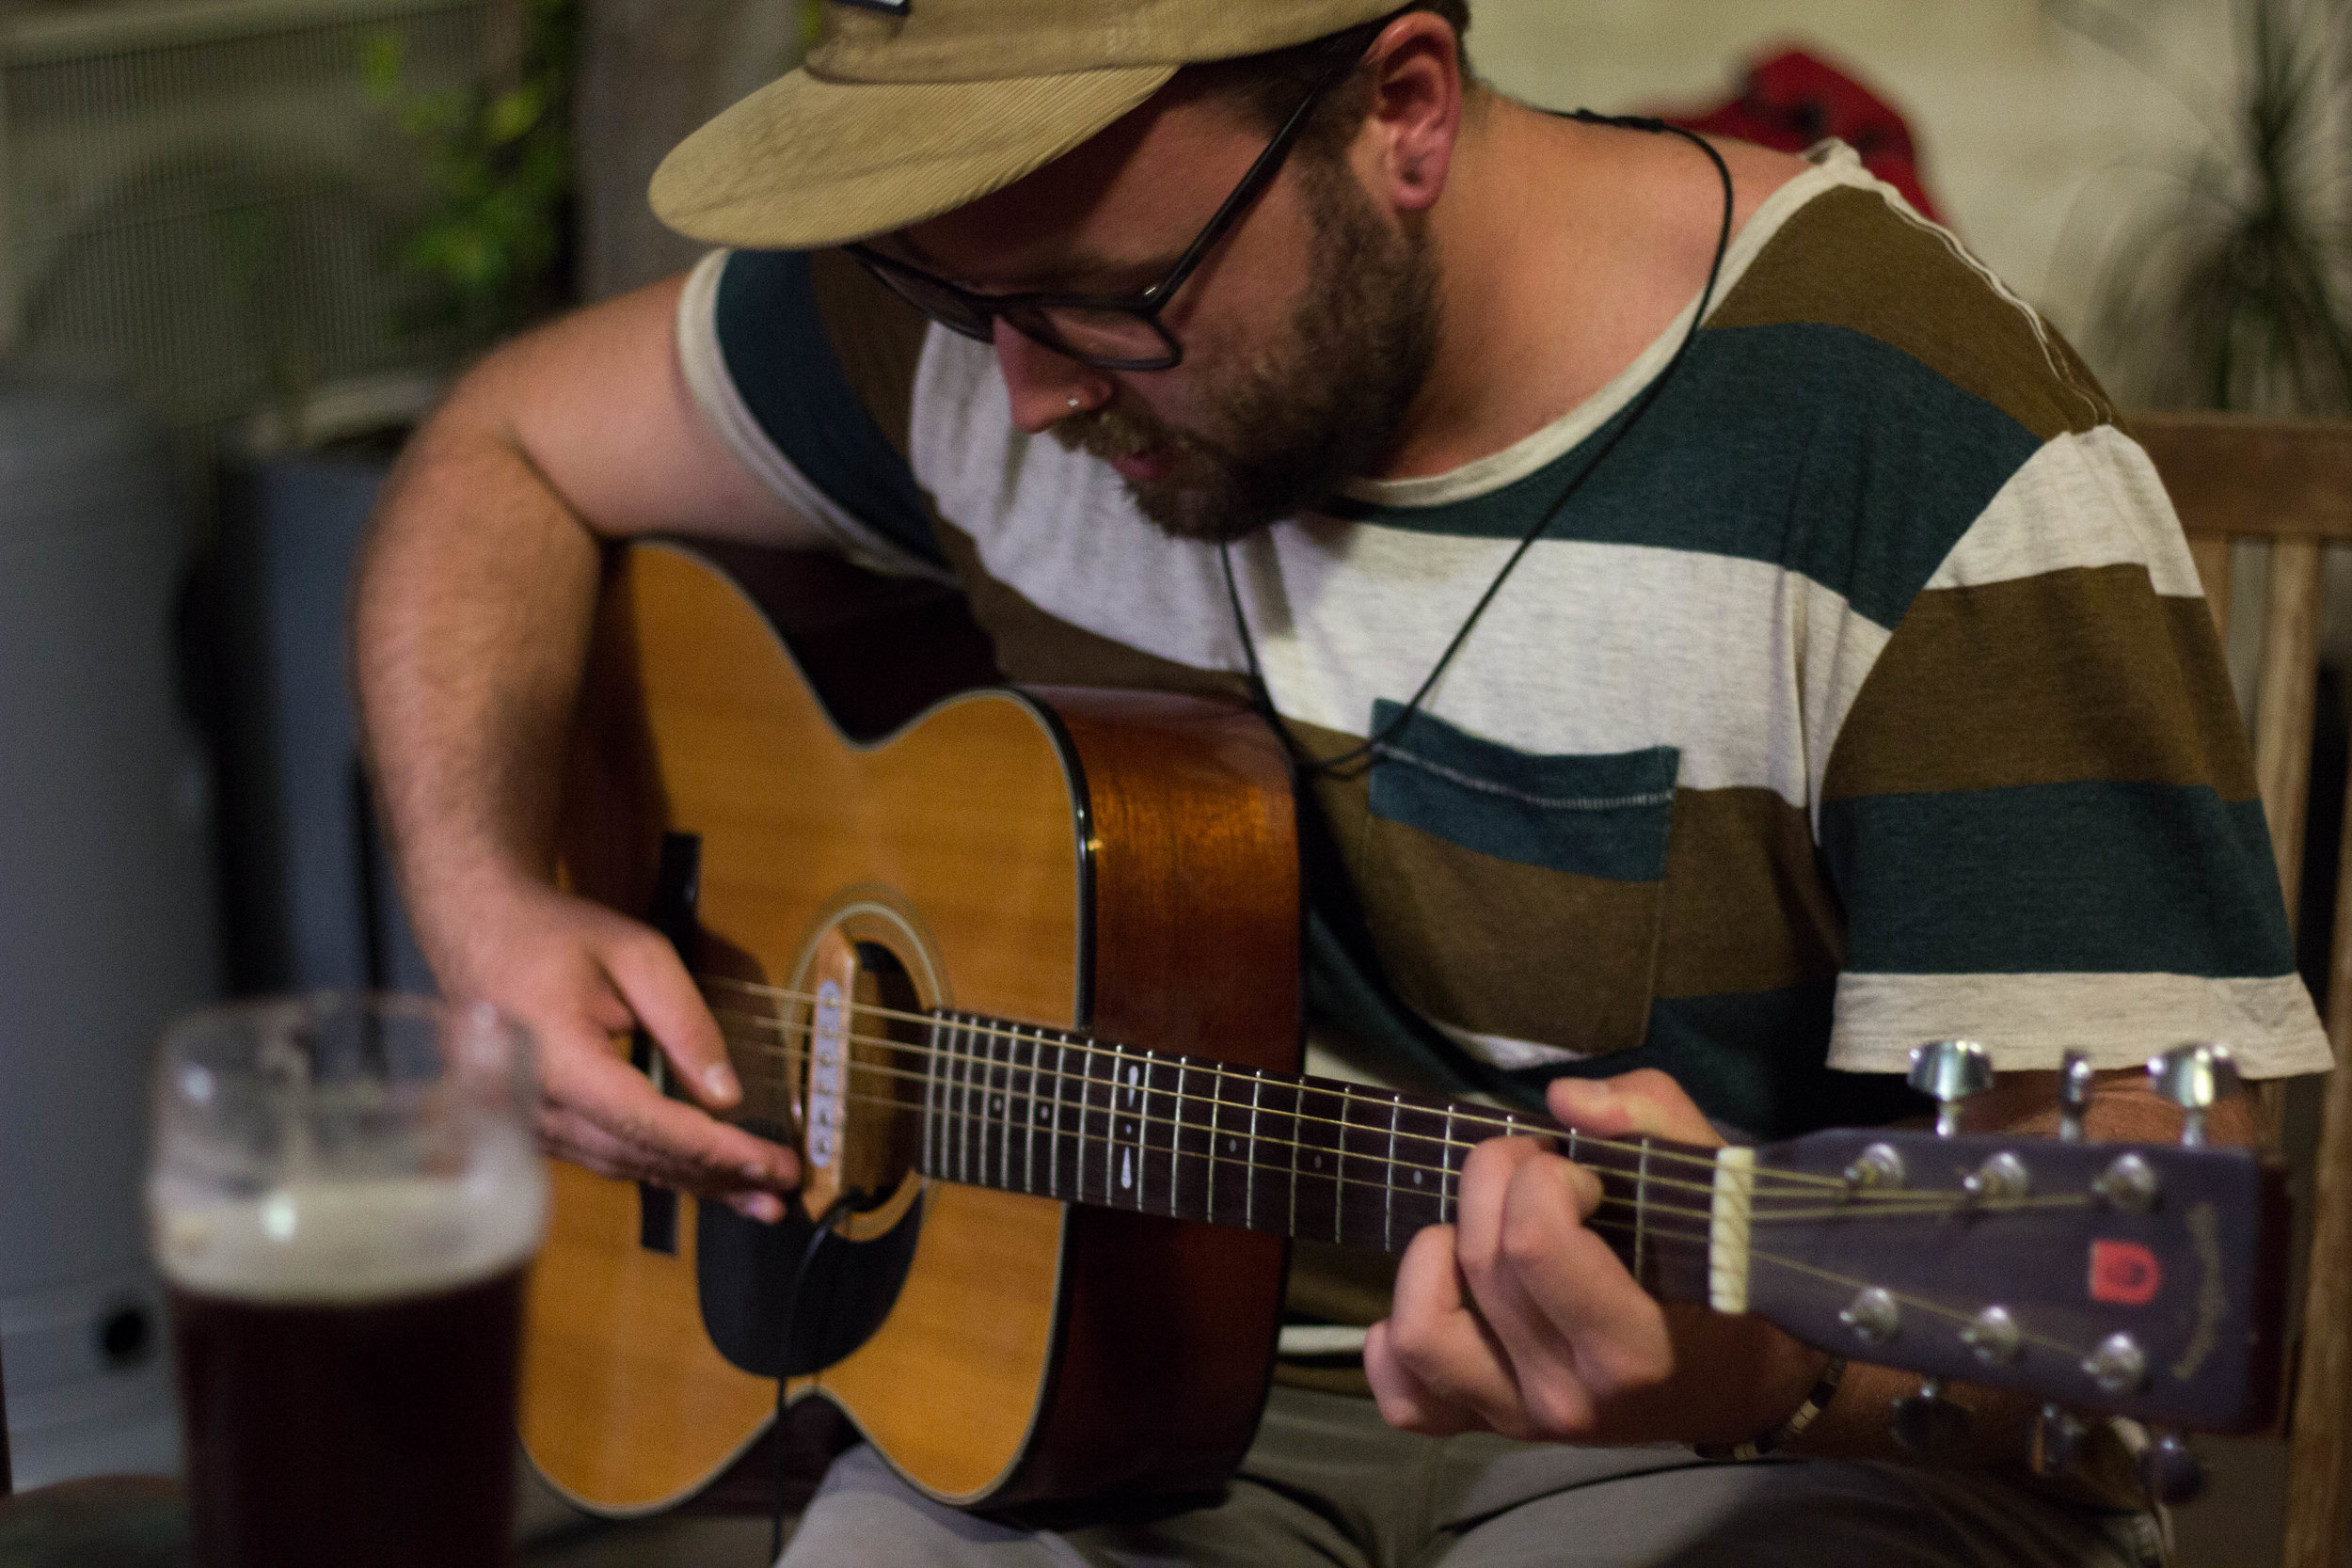 OPEN MIC THURSDAY - !! OPEN MIC HAS FINISHED UNTIL SPRING !!Our open mic is pretty wide open, you can sign up here, at the bar anytime we're open, or qwajust show up. It's a really laid back, inviting atmosphere and we'll even give you a beer to help the nerves.